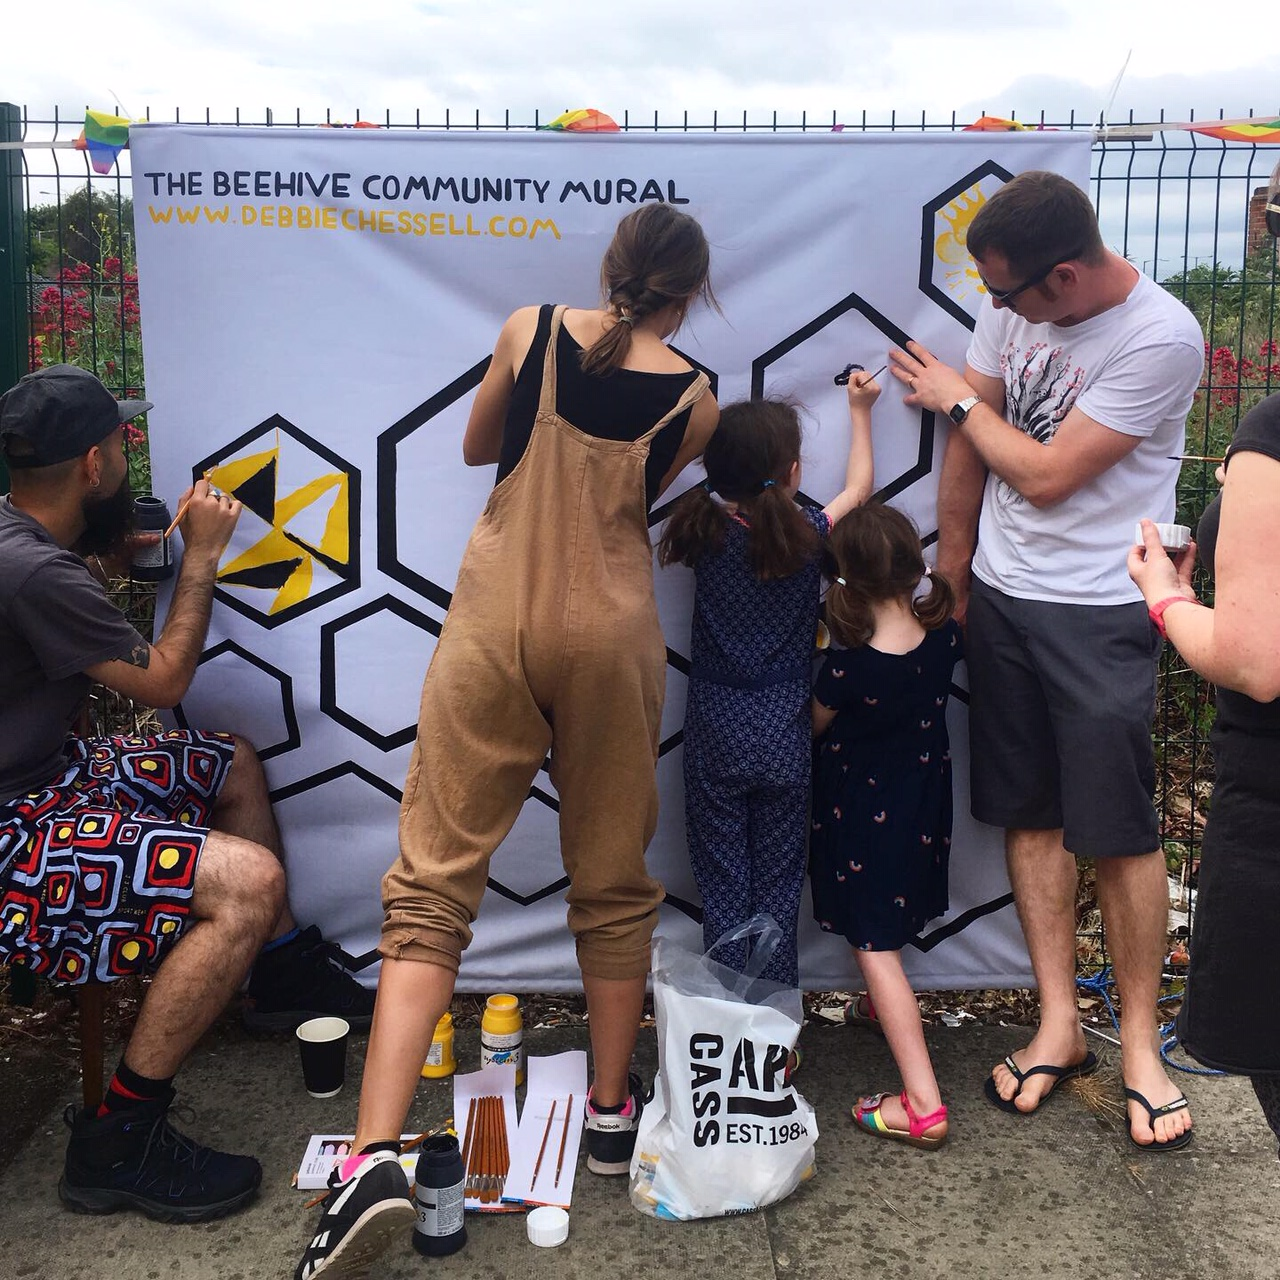 COMMUNITY MURAL   To help spread awareness of the project, The Beehive ran a community mural painting workshop at SHEDx's Tolworth Day event